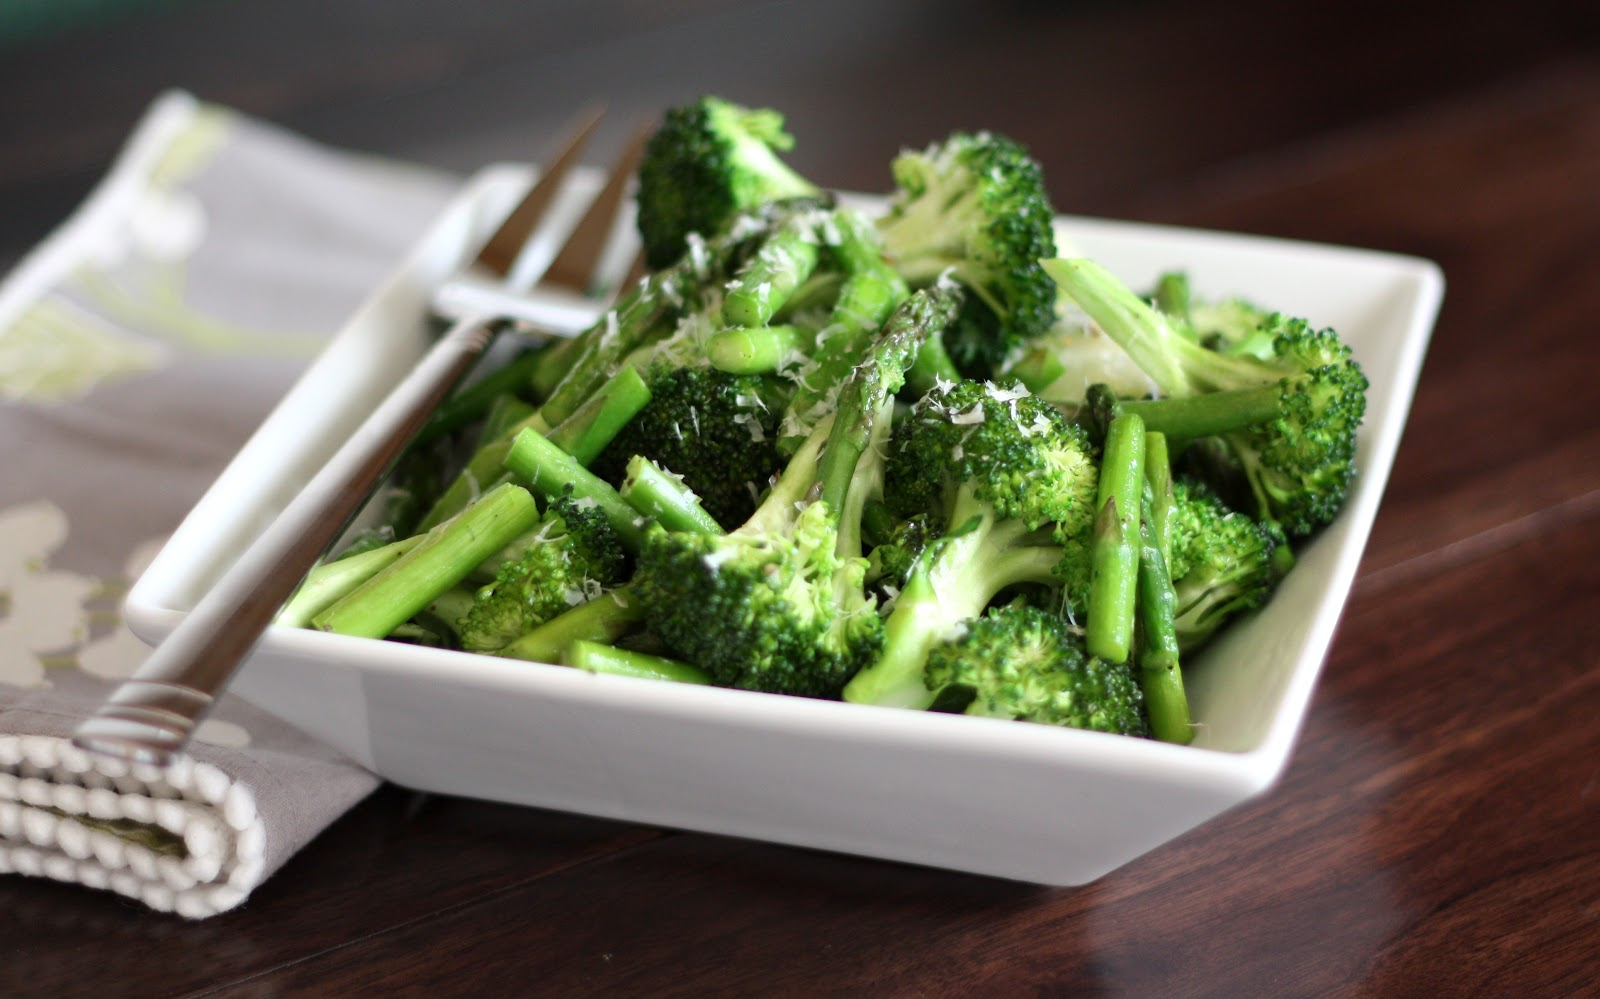 Barefeet In The Kitchen: Sauteed Broccoli and Asparagus with Parmesan